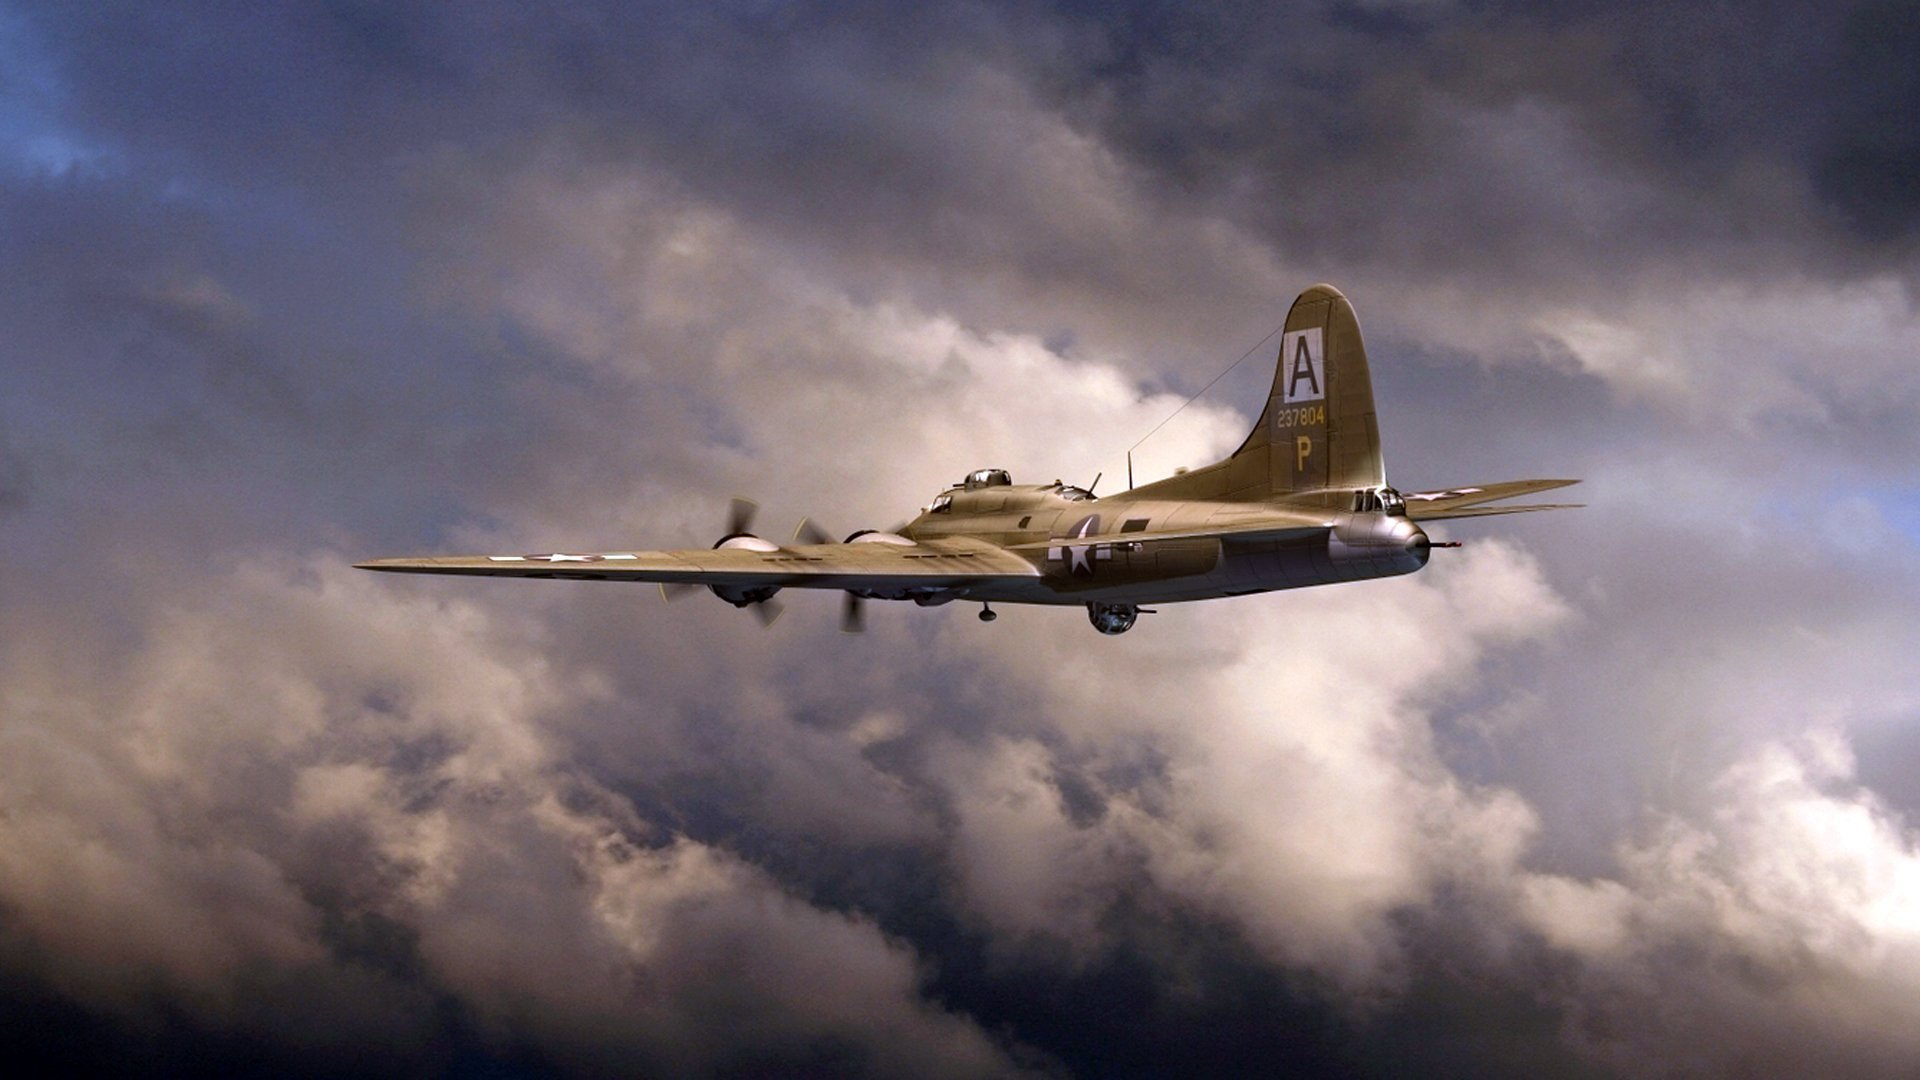 boeing b 17 flying fortress art HD wallpaper 1920x1080